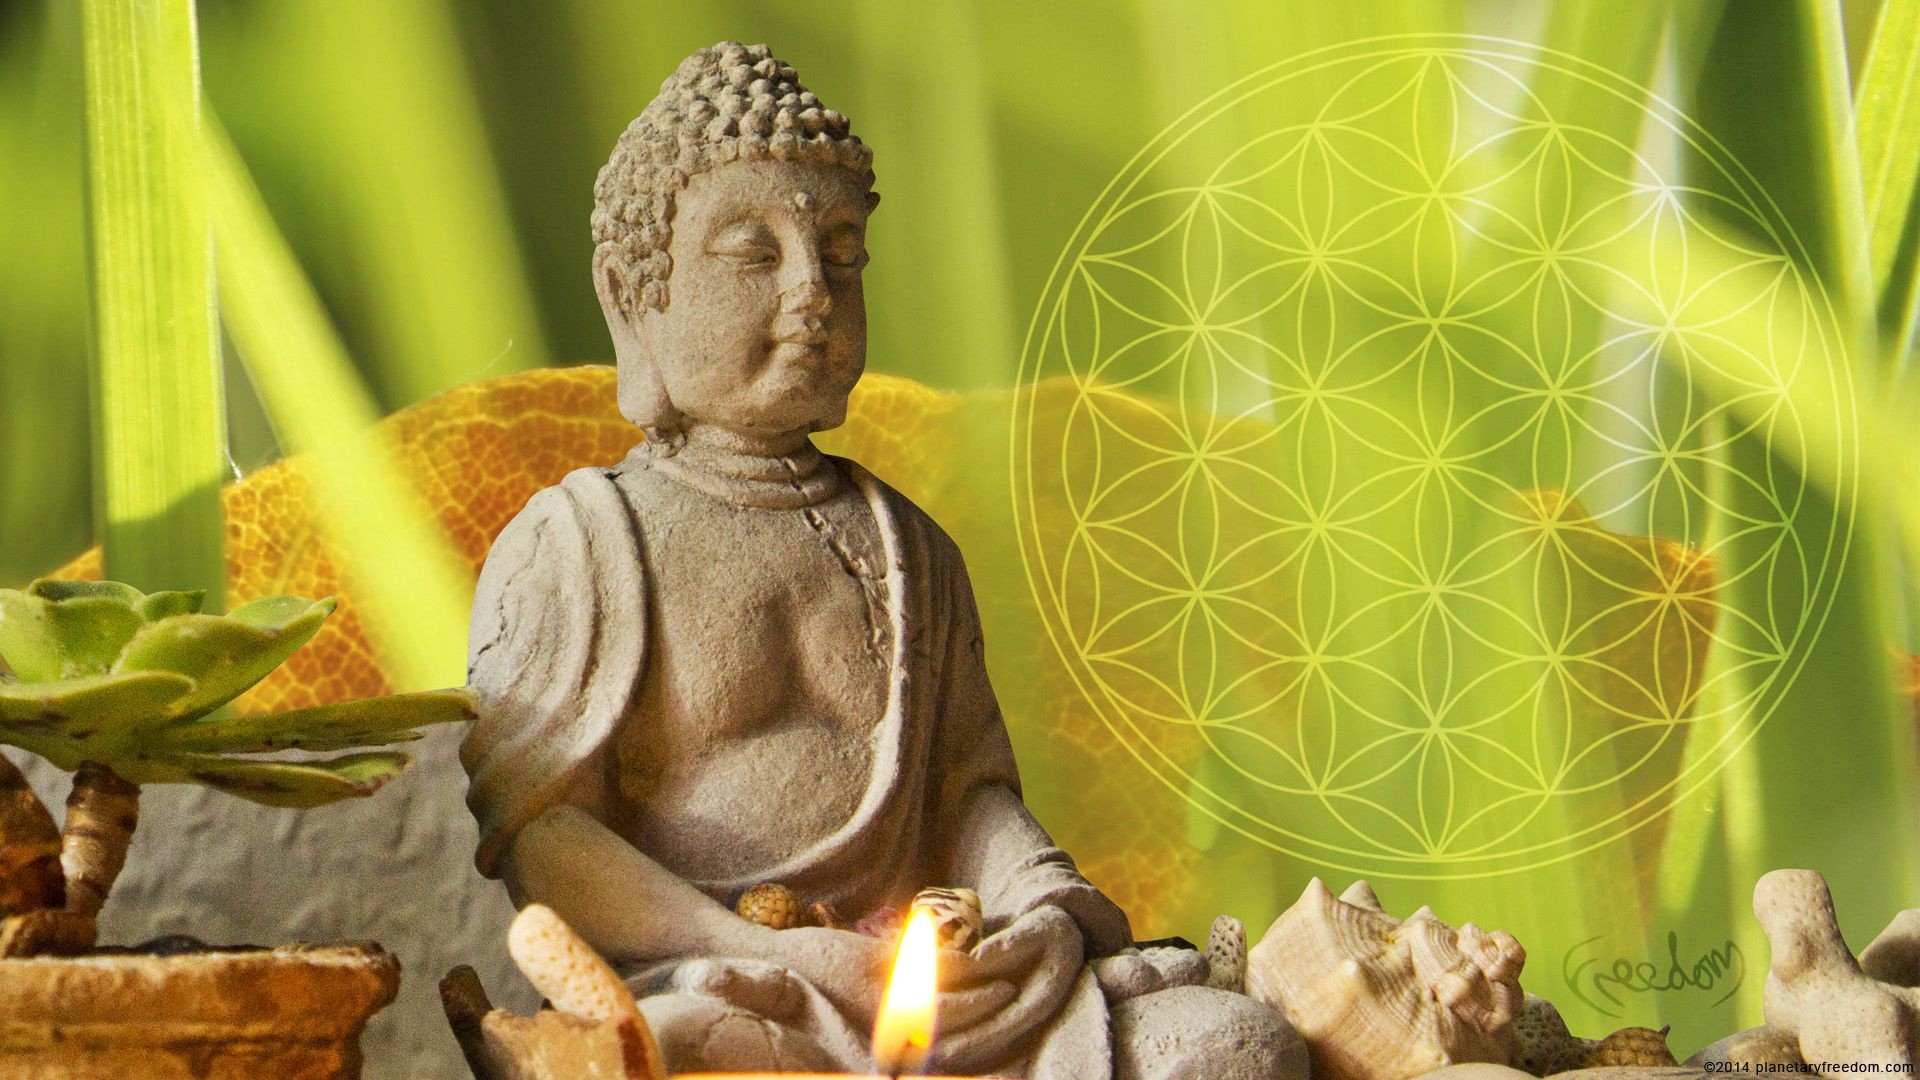 Flower Of Life Buddha 269343 Hd Wallpaper Backgrounds Download